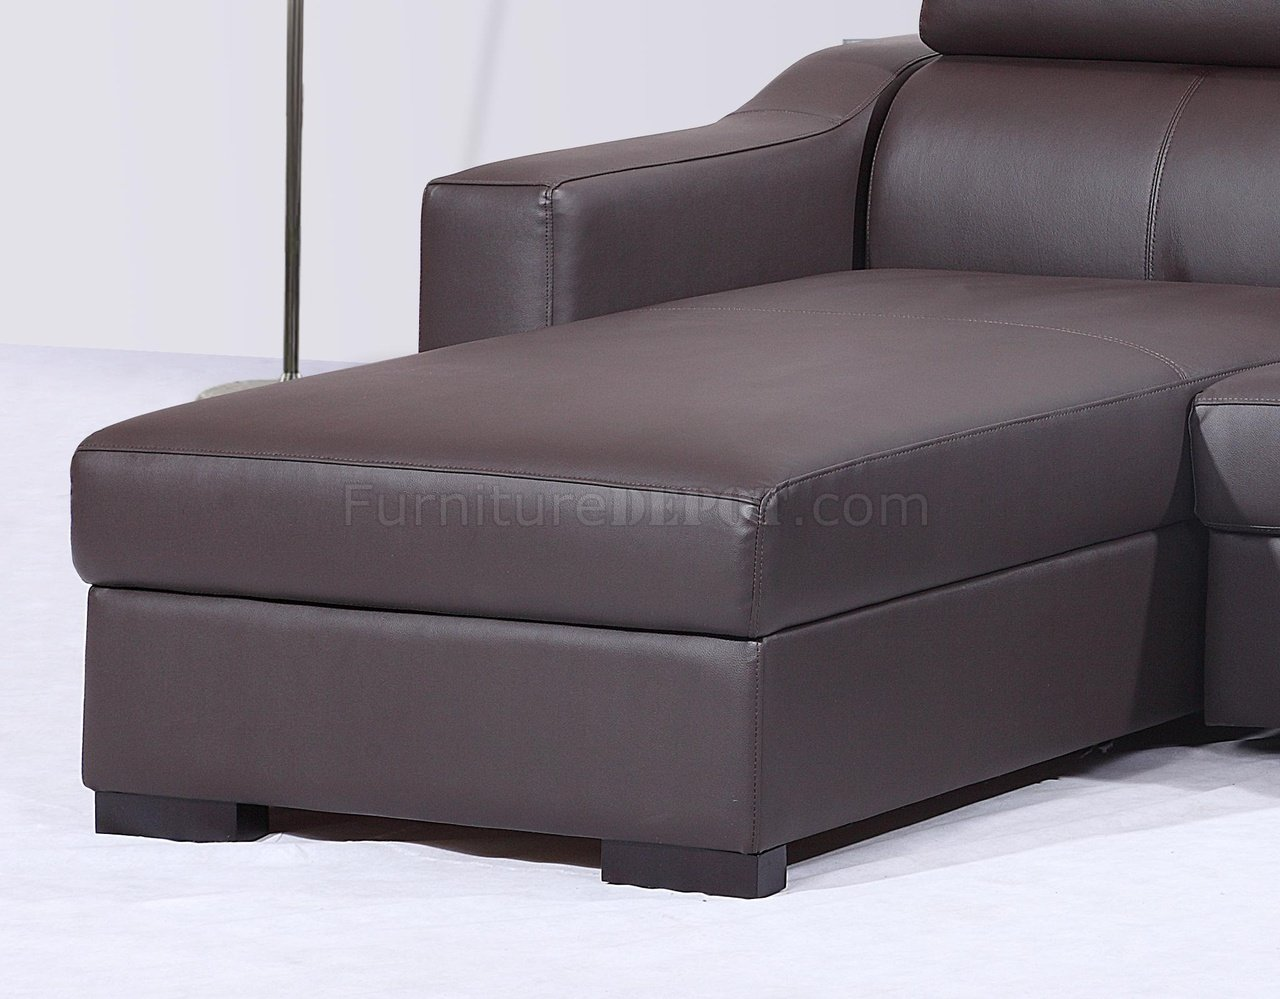 Sectional Sleeper Sofa Bed | Sectional Sofa With Recliner And Sleeper | Sectional Sleeper Sofa